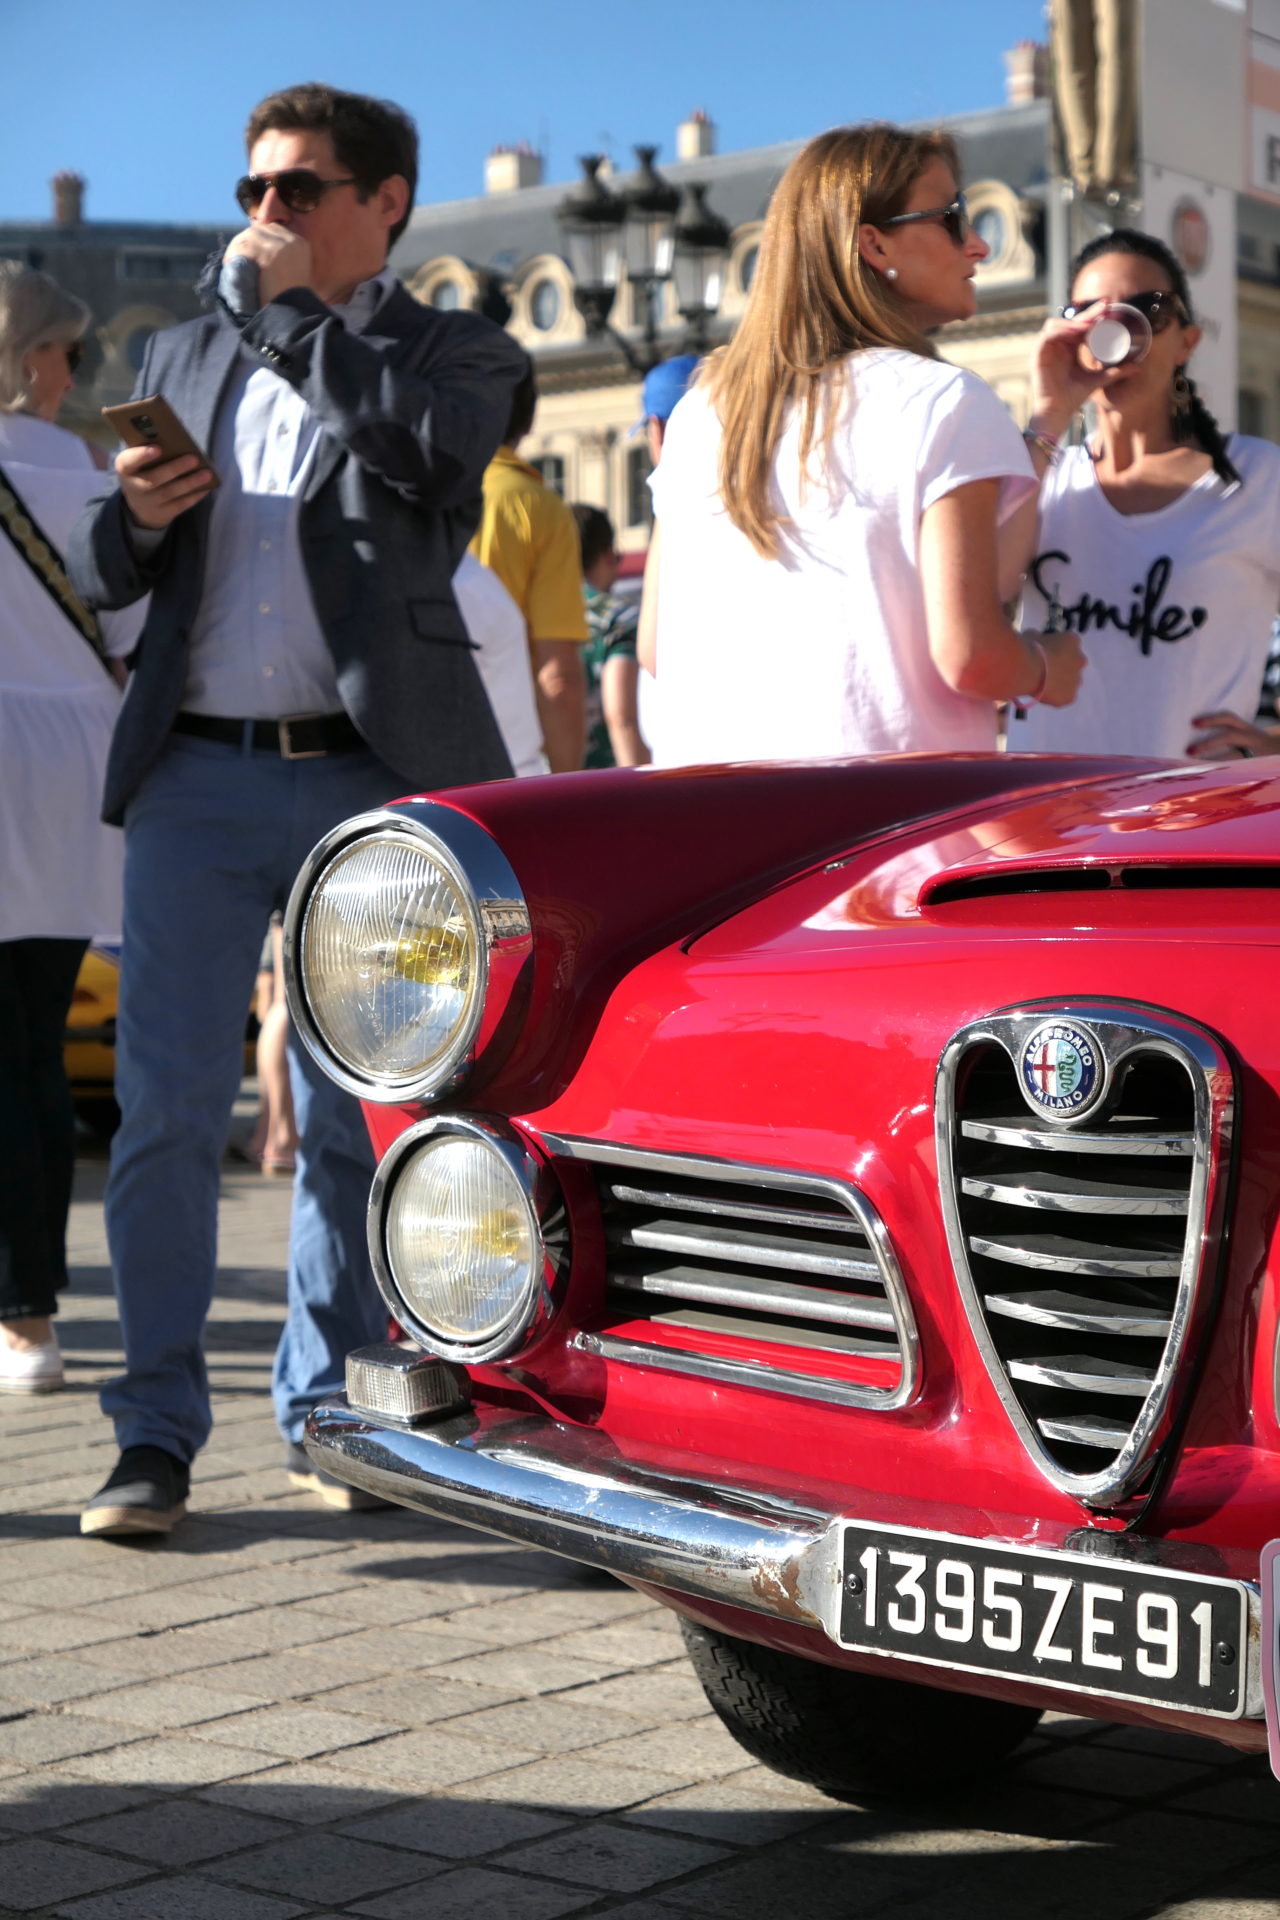 roadrugcars road rug cars rallye des princesses 2019 alfa romeo 2600 spider touring